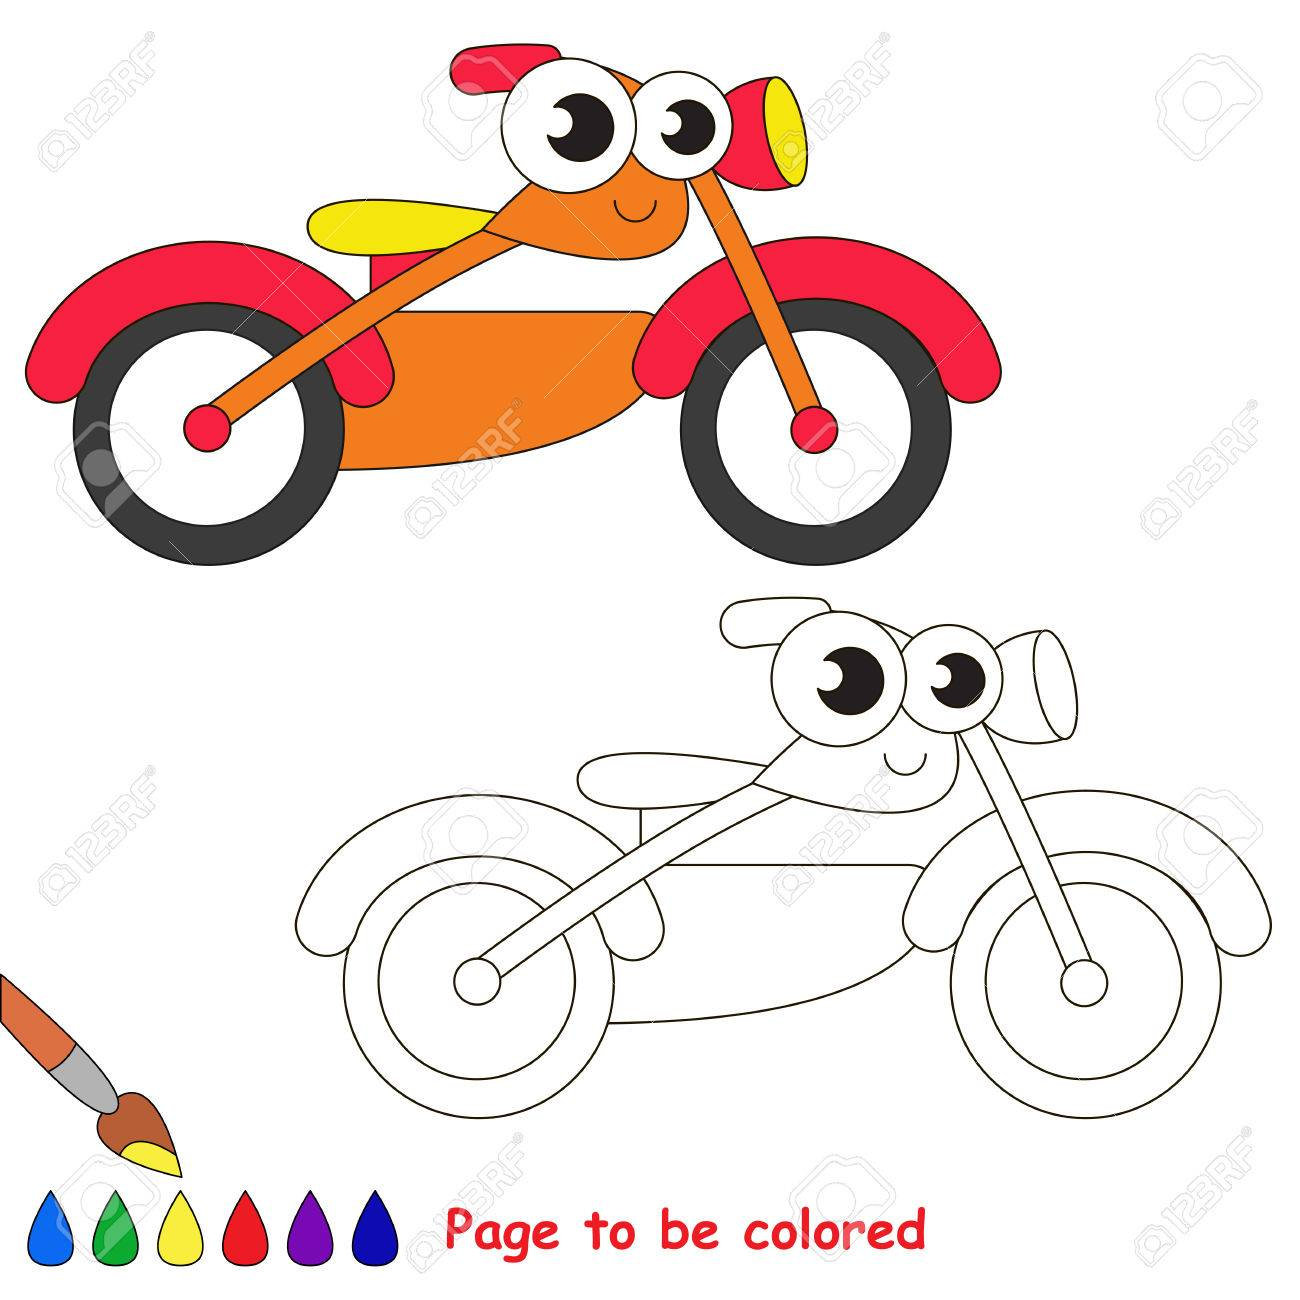 Orange Motor Bike To Be Colored Coloring Book To Educate Kids Royalty Free Cliparts Vectors And Stock Illustration Image 59031899